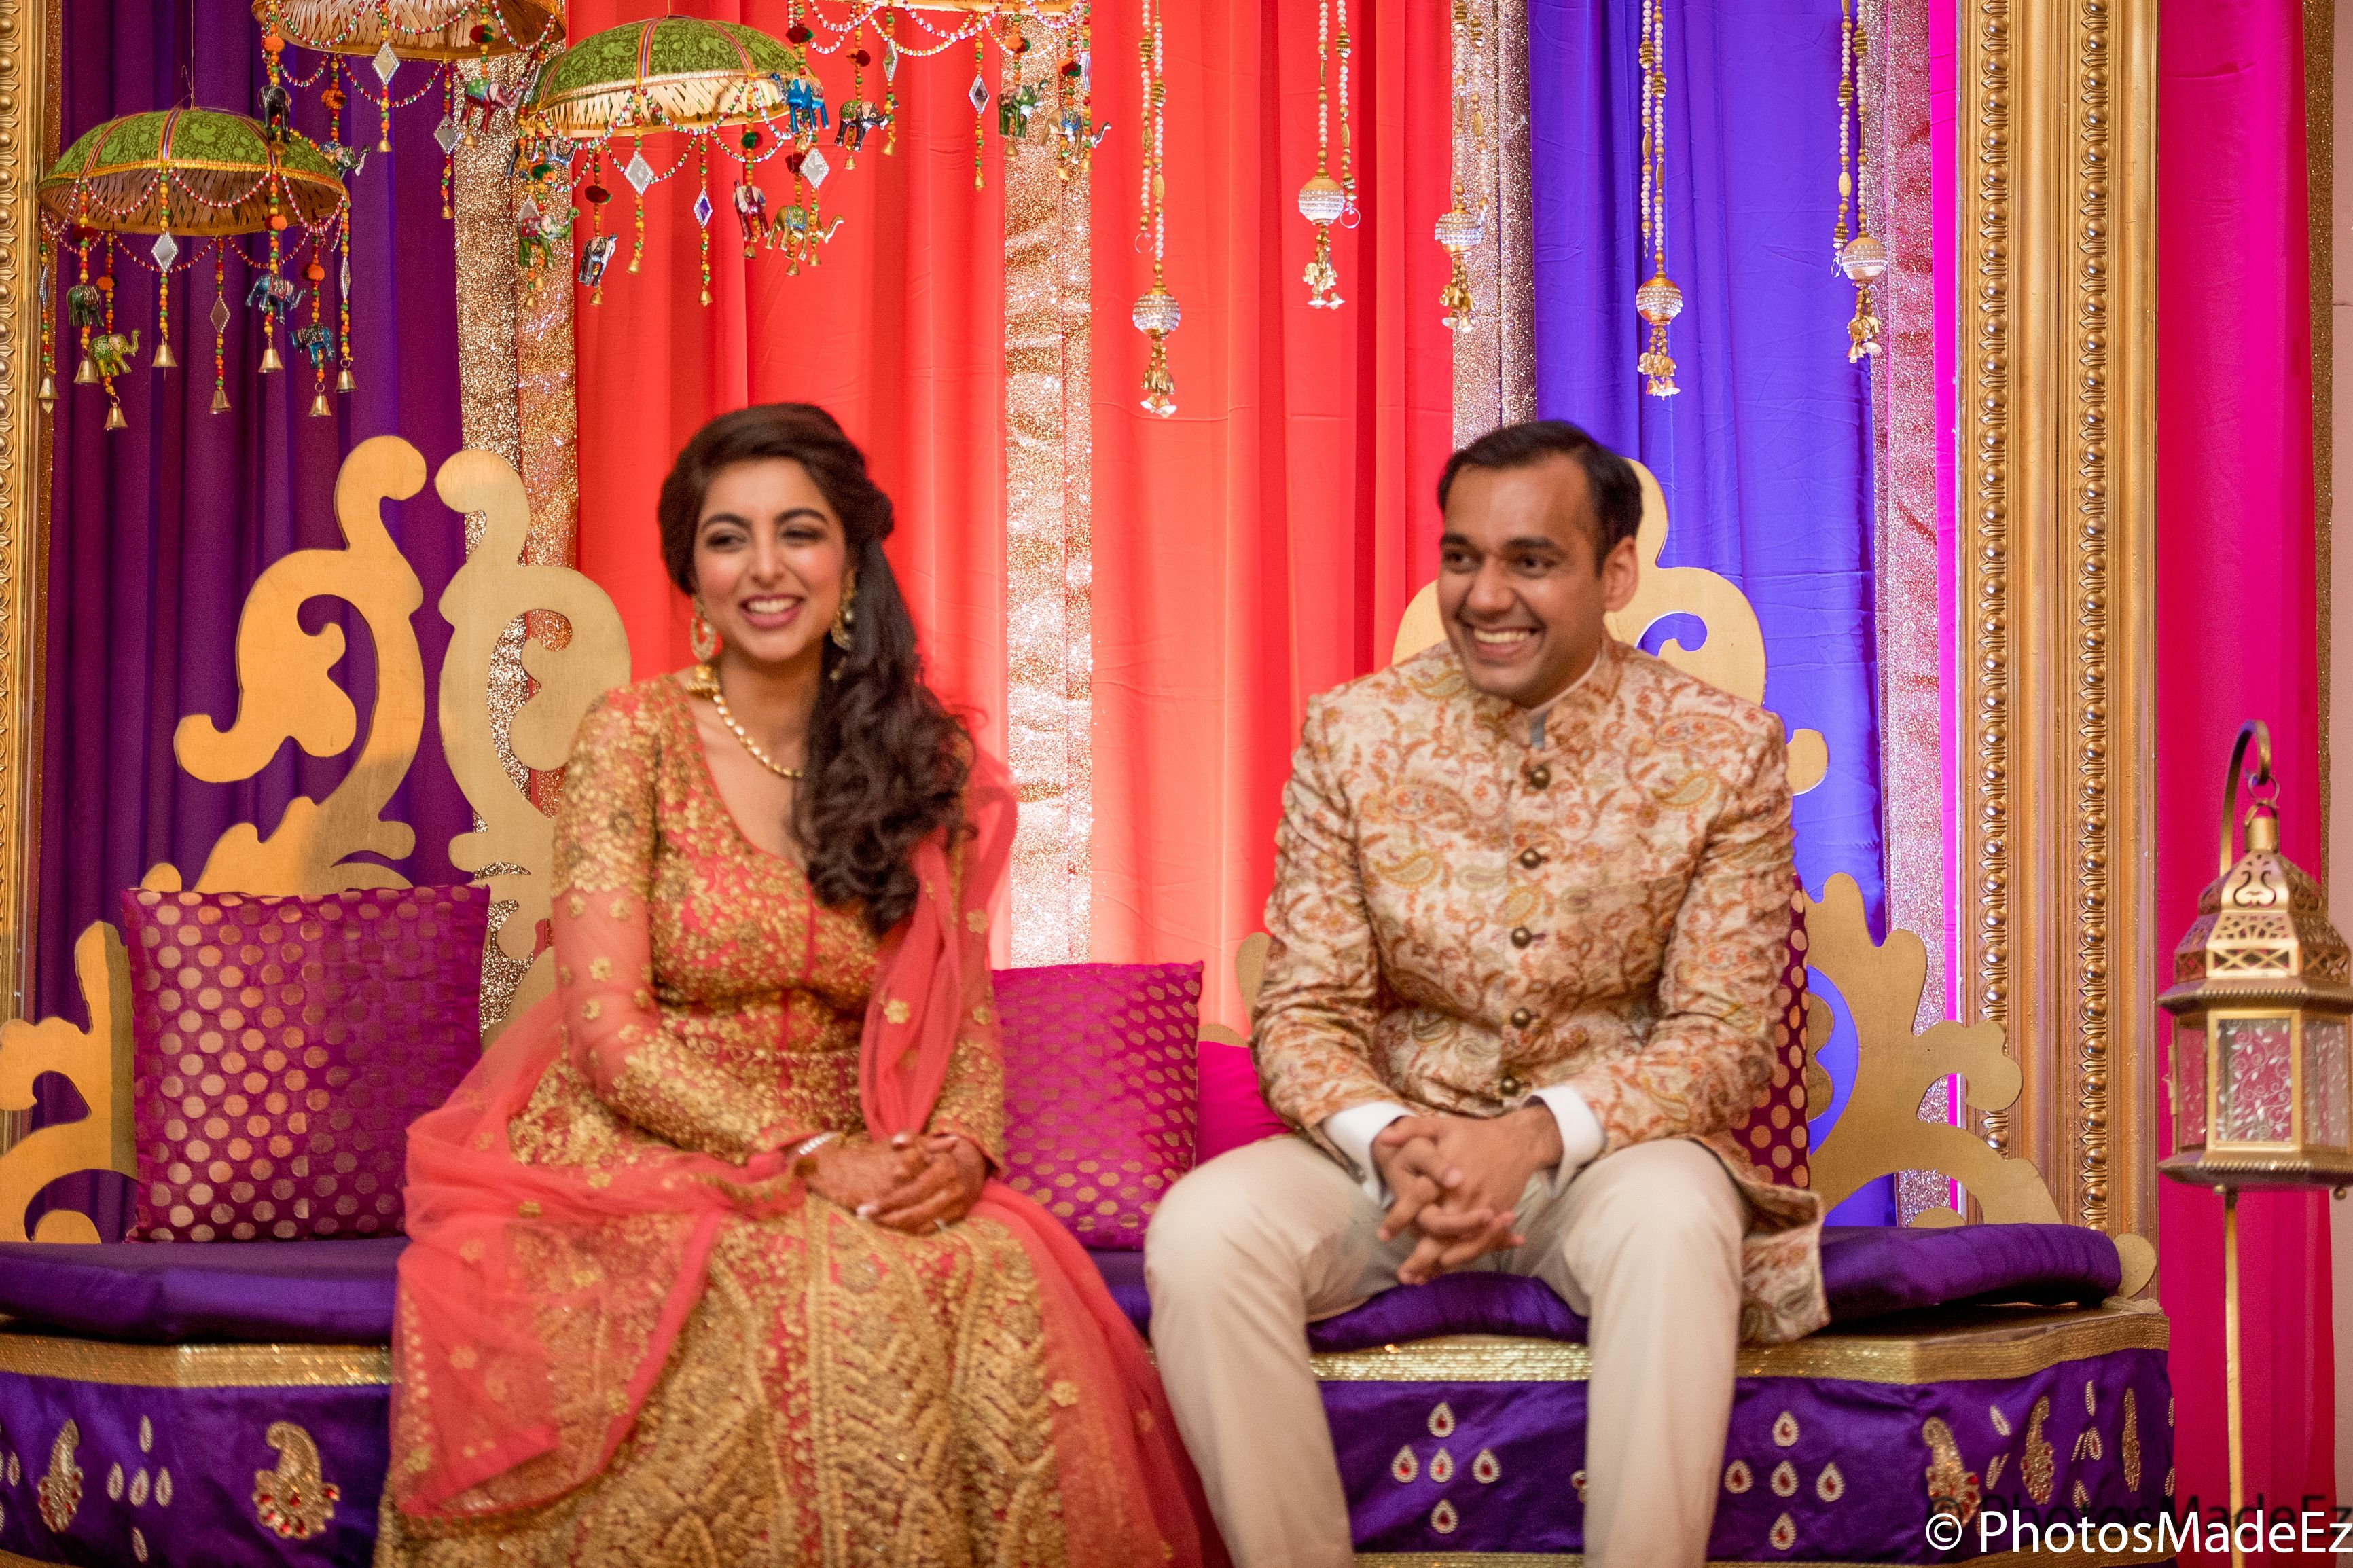 Mehndi Night : Salima and zaheed bride groom on sangeet mehndi night at royal